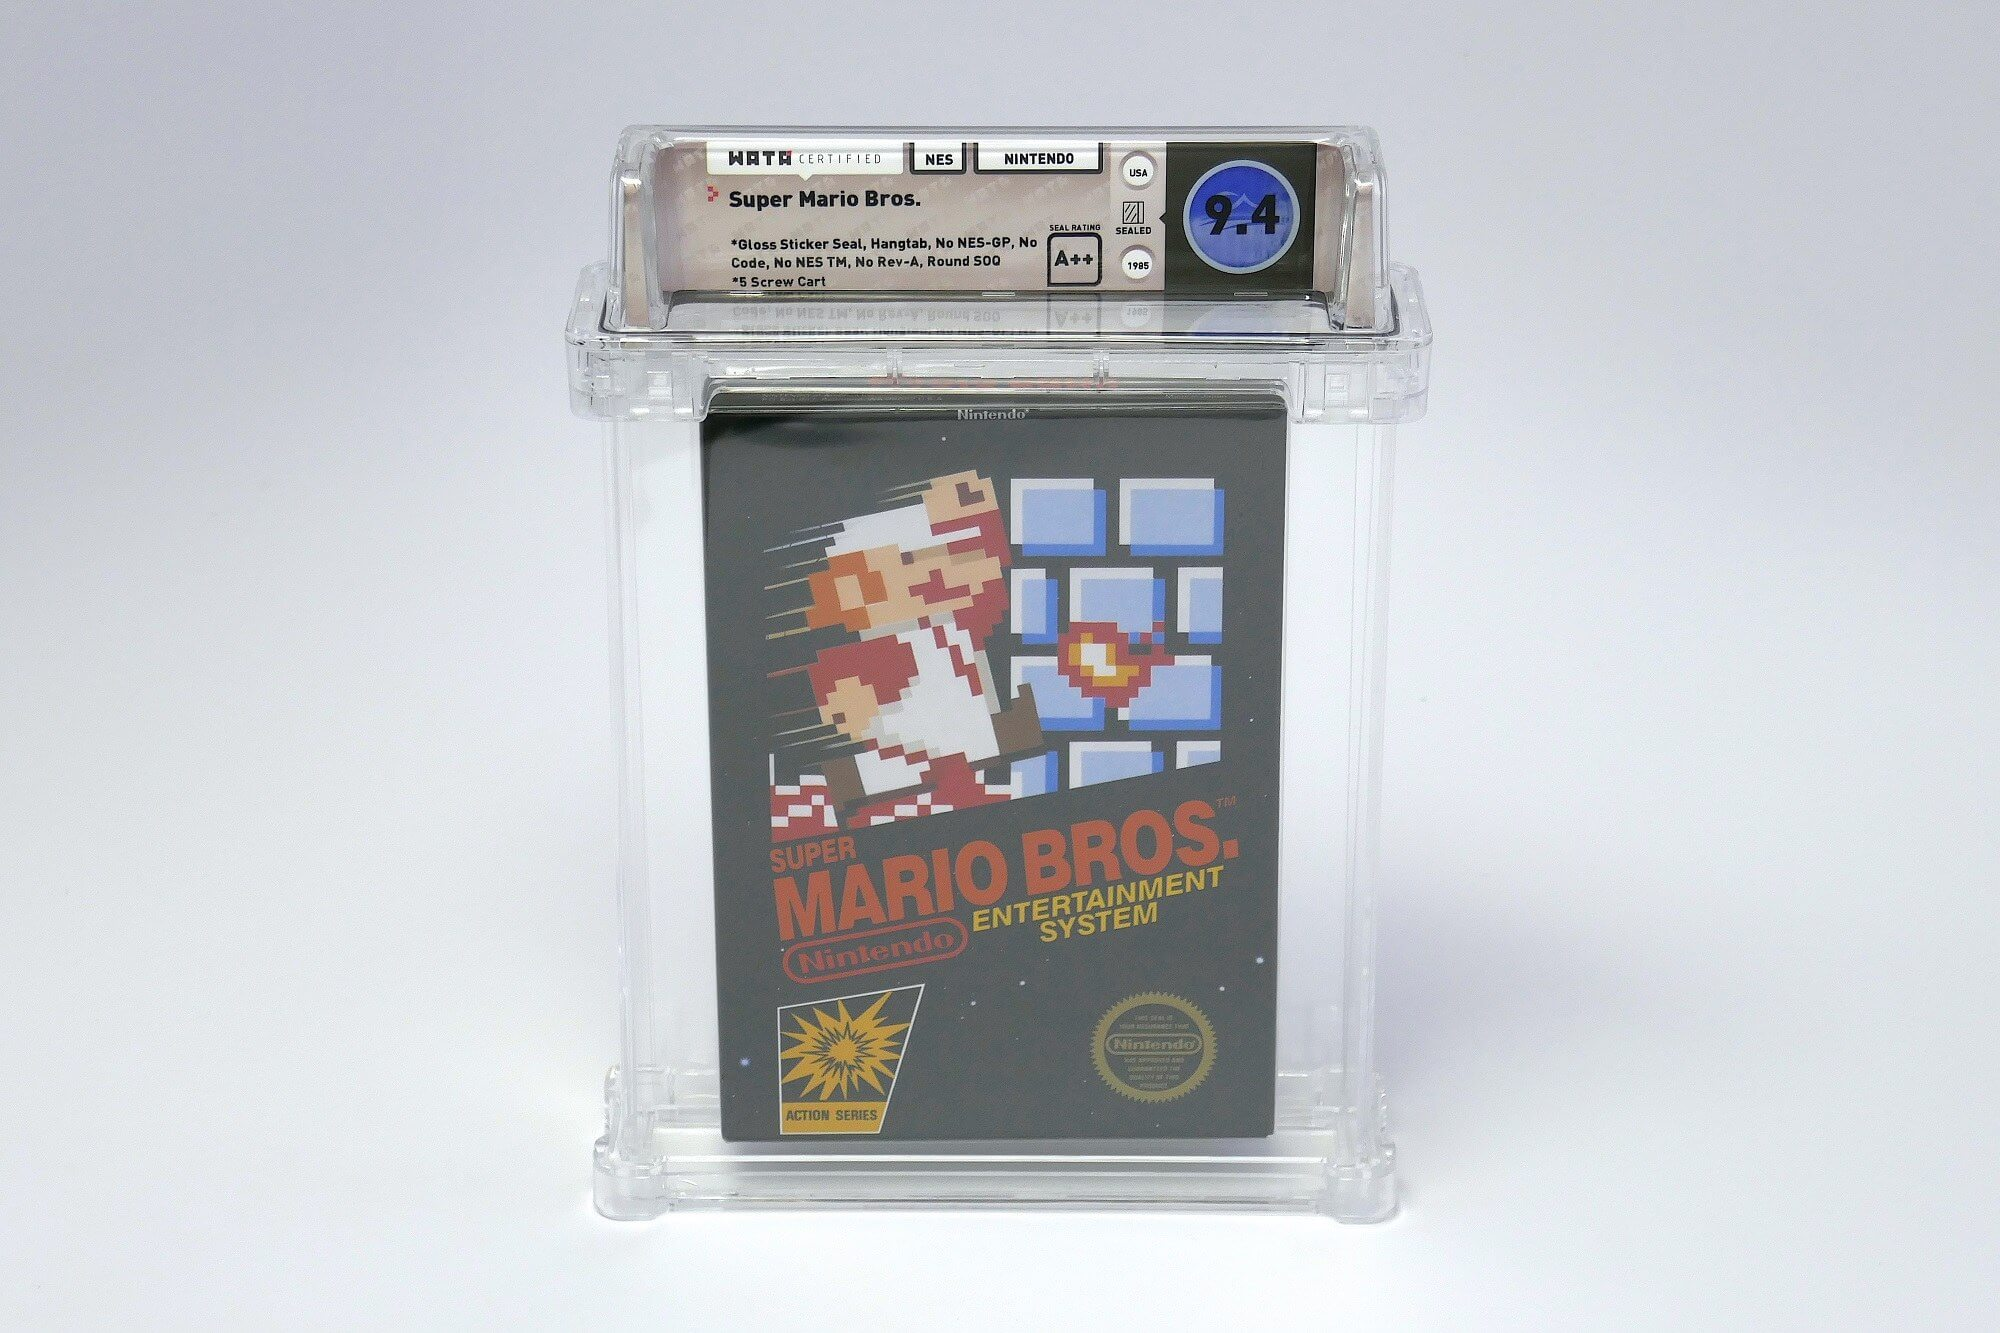 Rare Super Mario Bros. game sells for $100,150